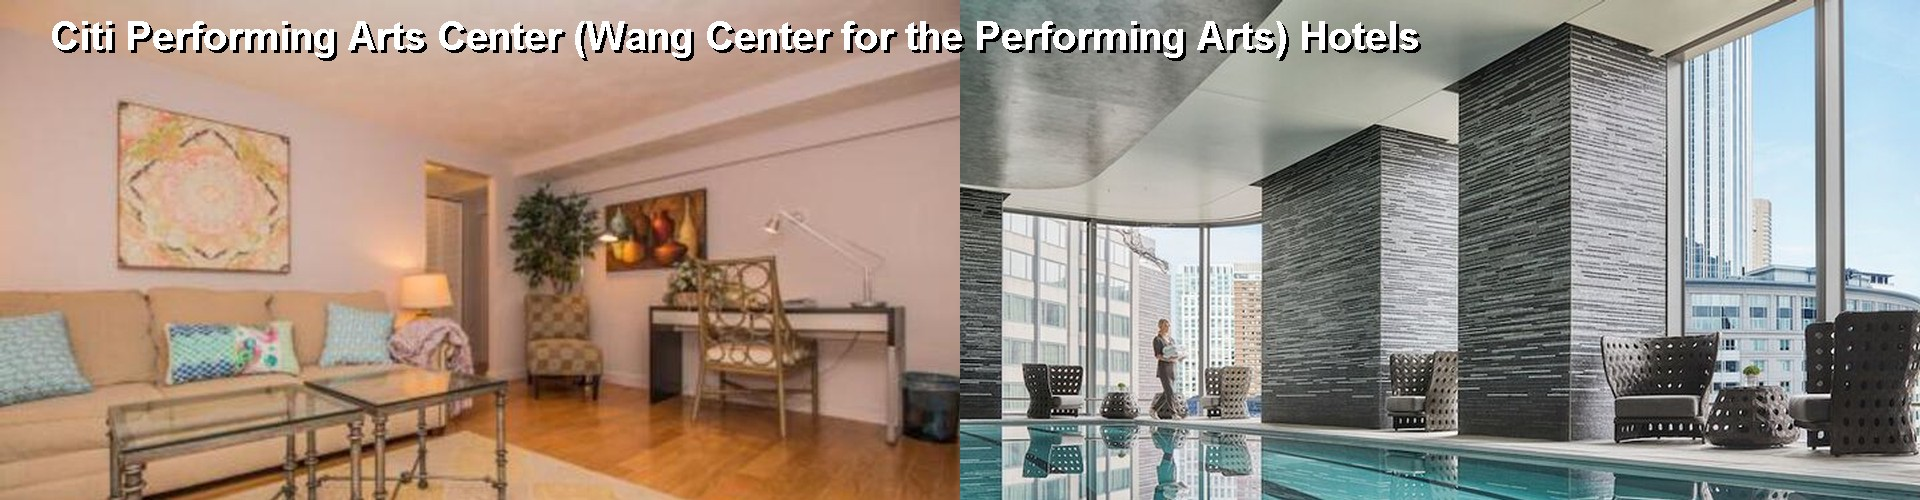 5 Best Hotels near Citi Performing Arts Center (Wang Center for the Performing Arts)